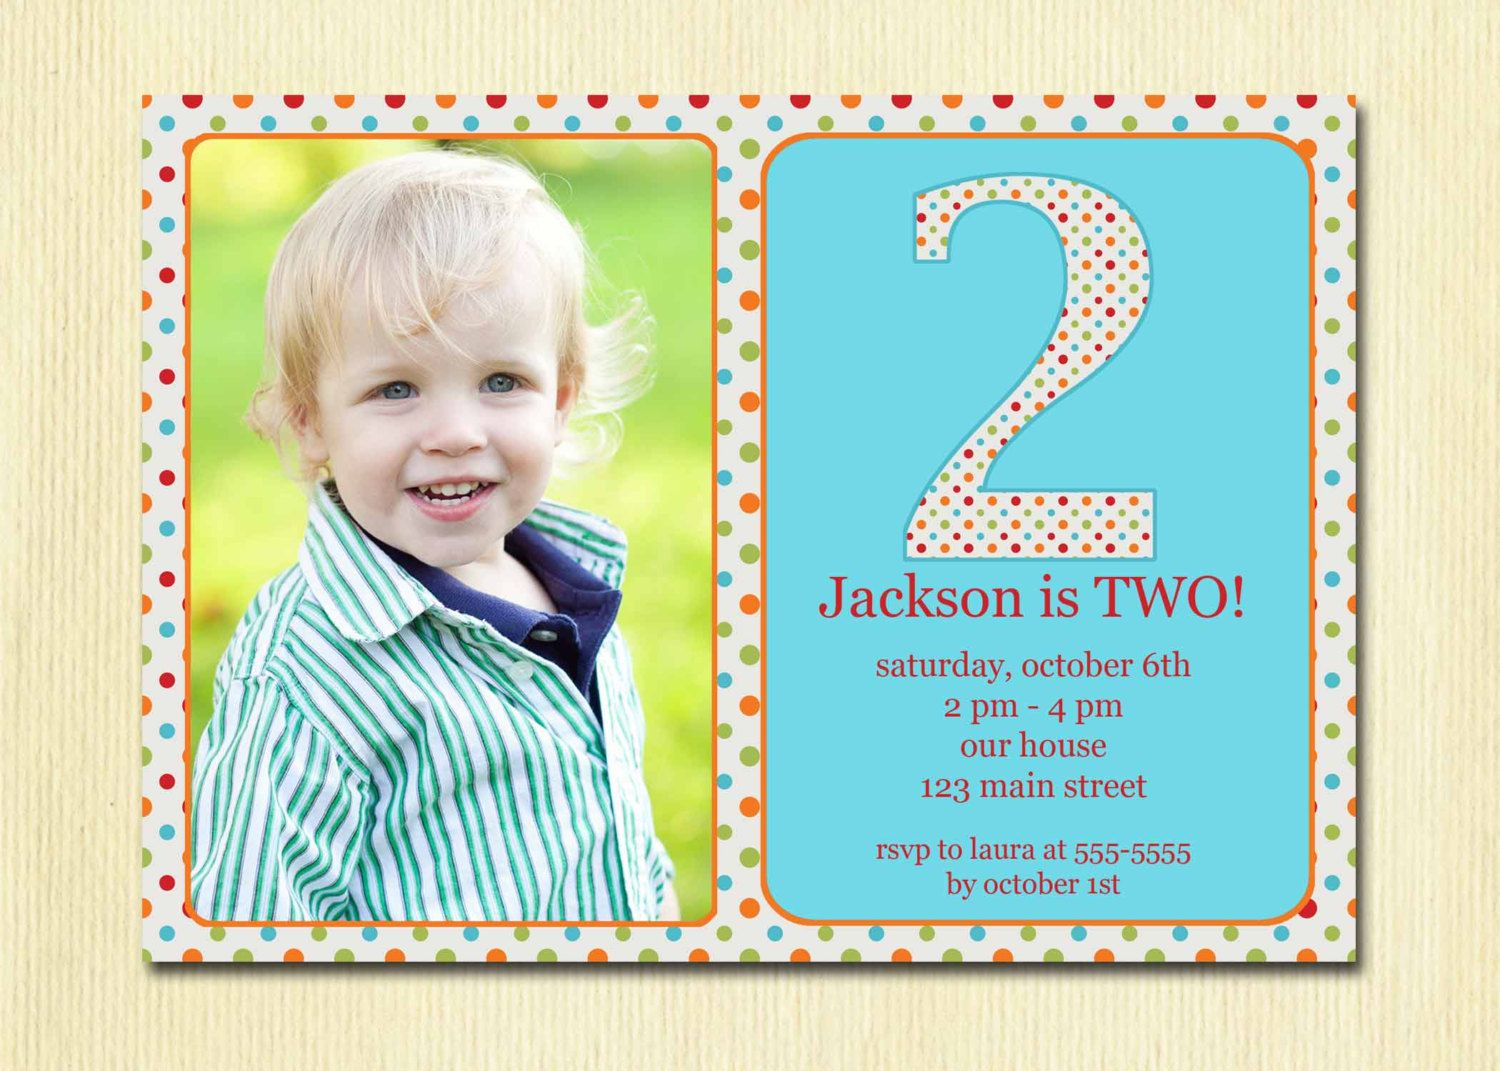 4 year old birthday invitation sayings ; 862613ed4a29f453bd1947d4b1c6d153